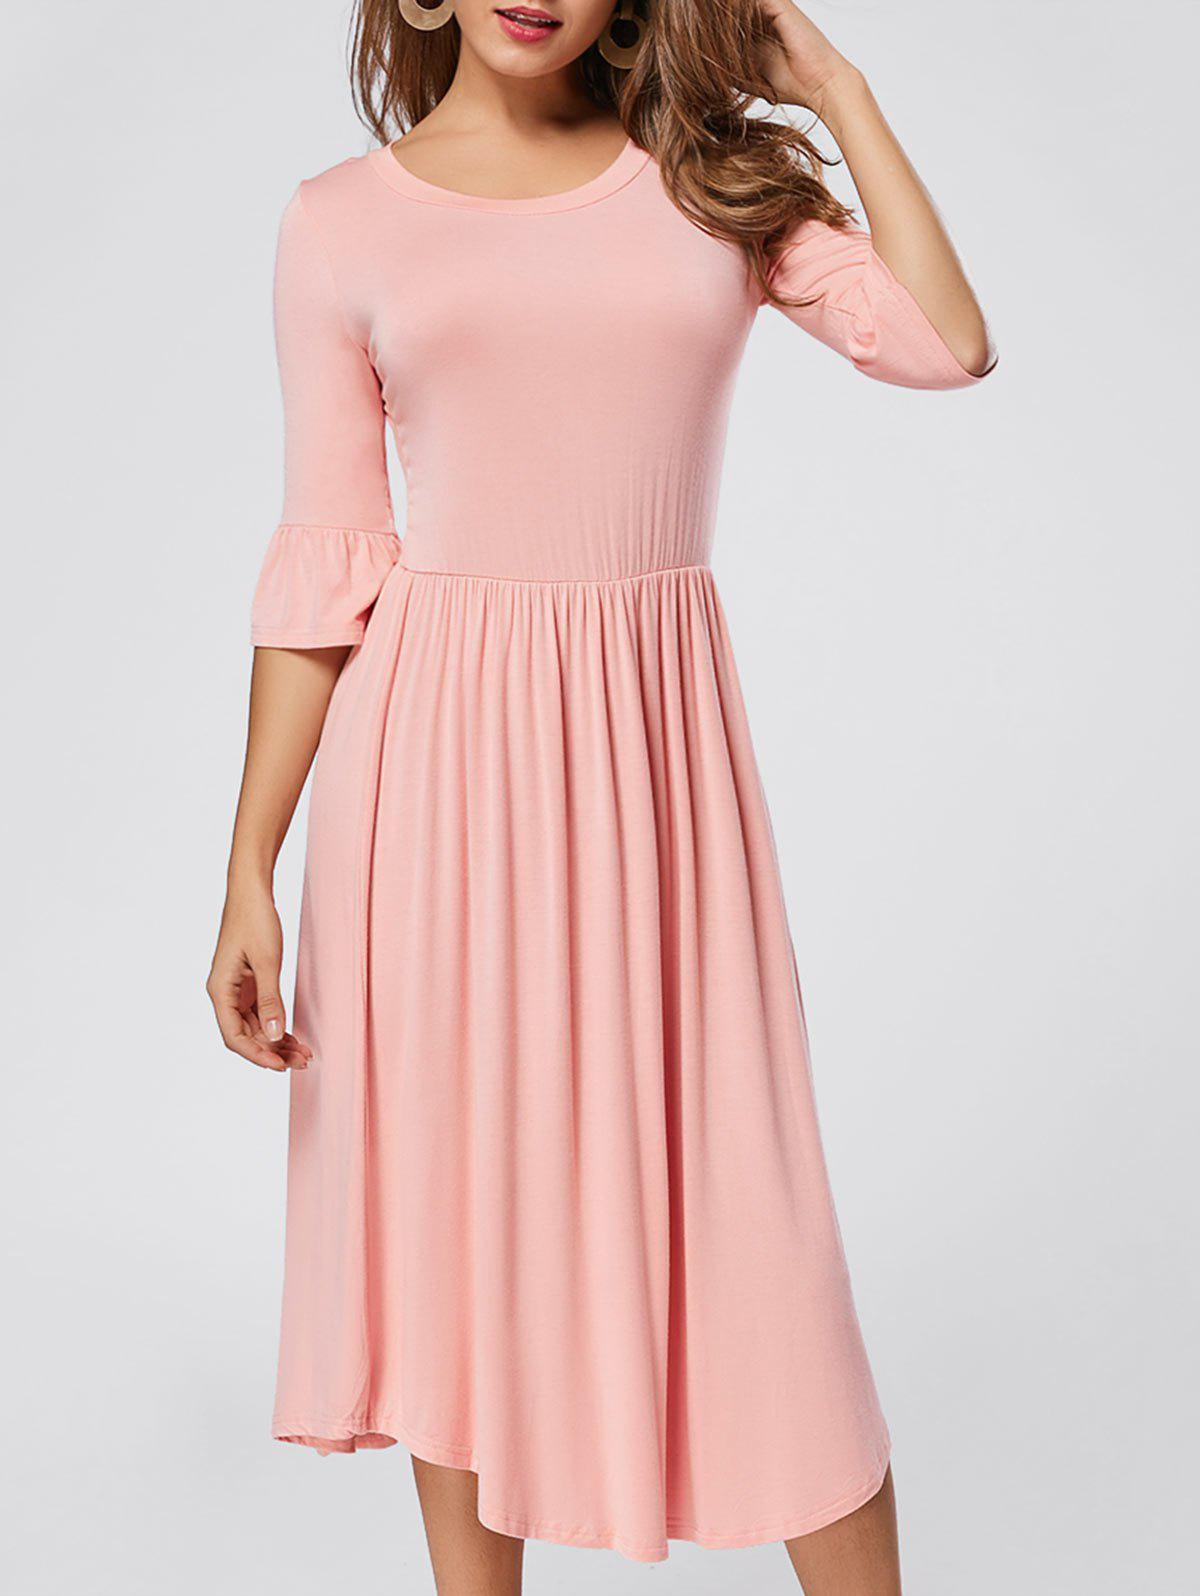 Ruffle Sleeve Midi Jersey Dress - PINK XL